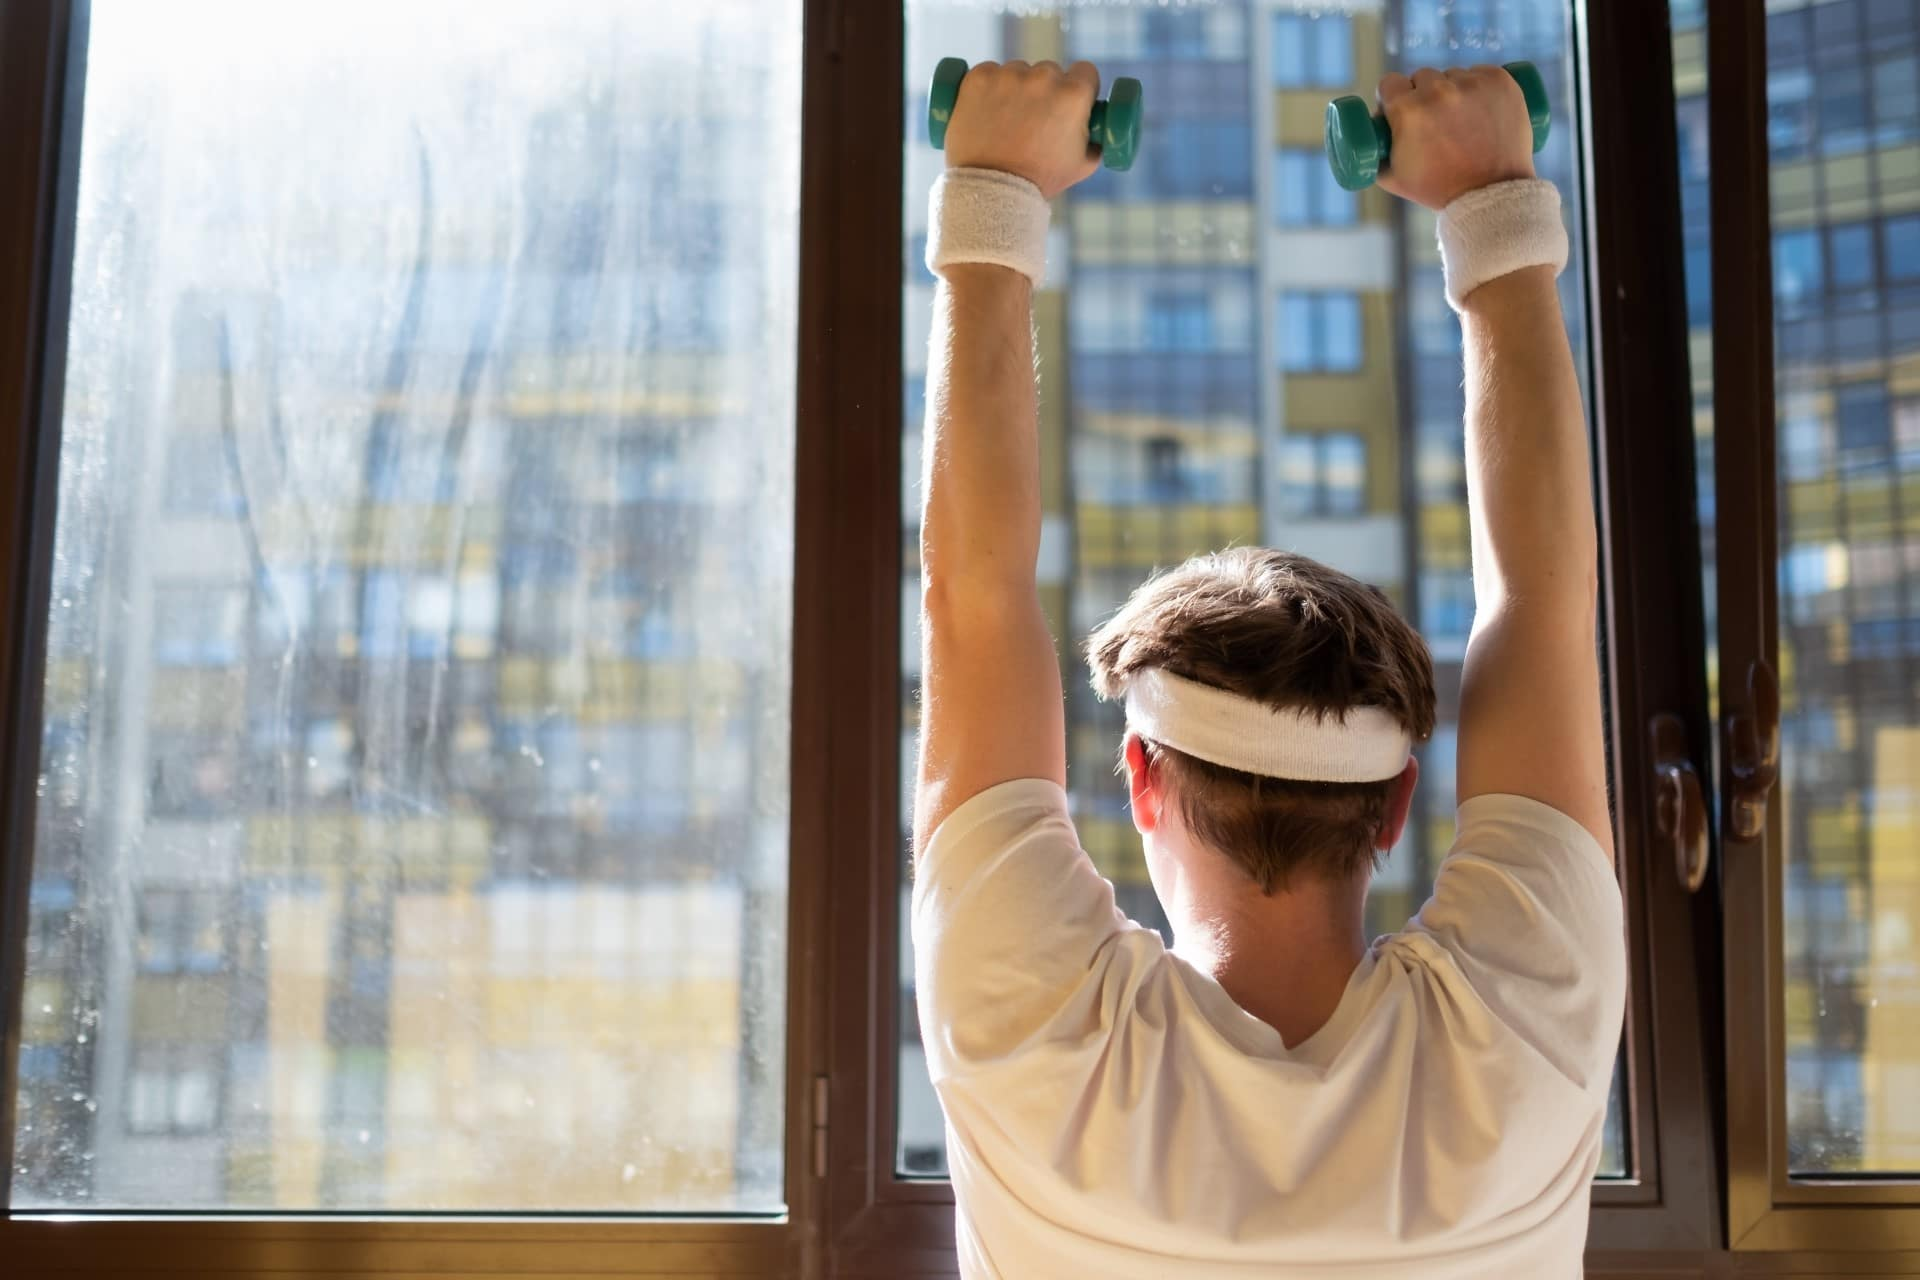 Man Exercising at Home | Does Exercise Boost Immune System? Blog Featured Image.